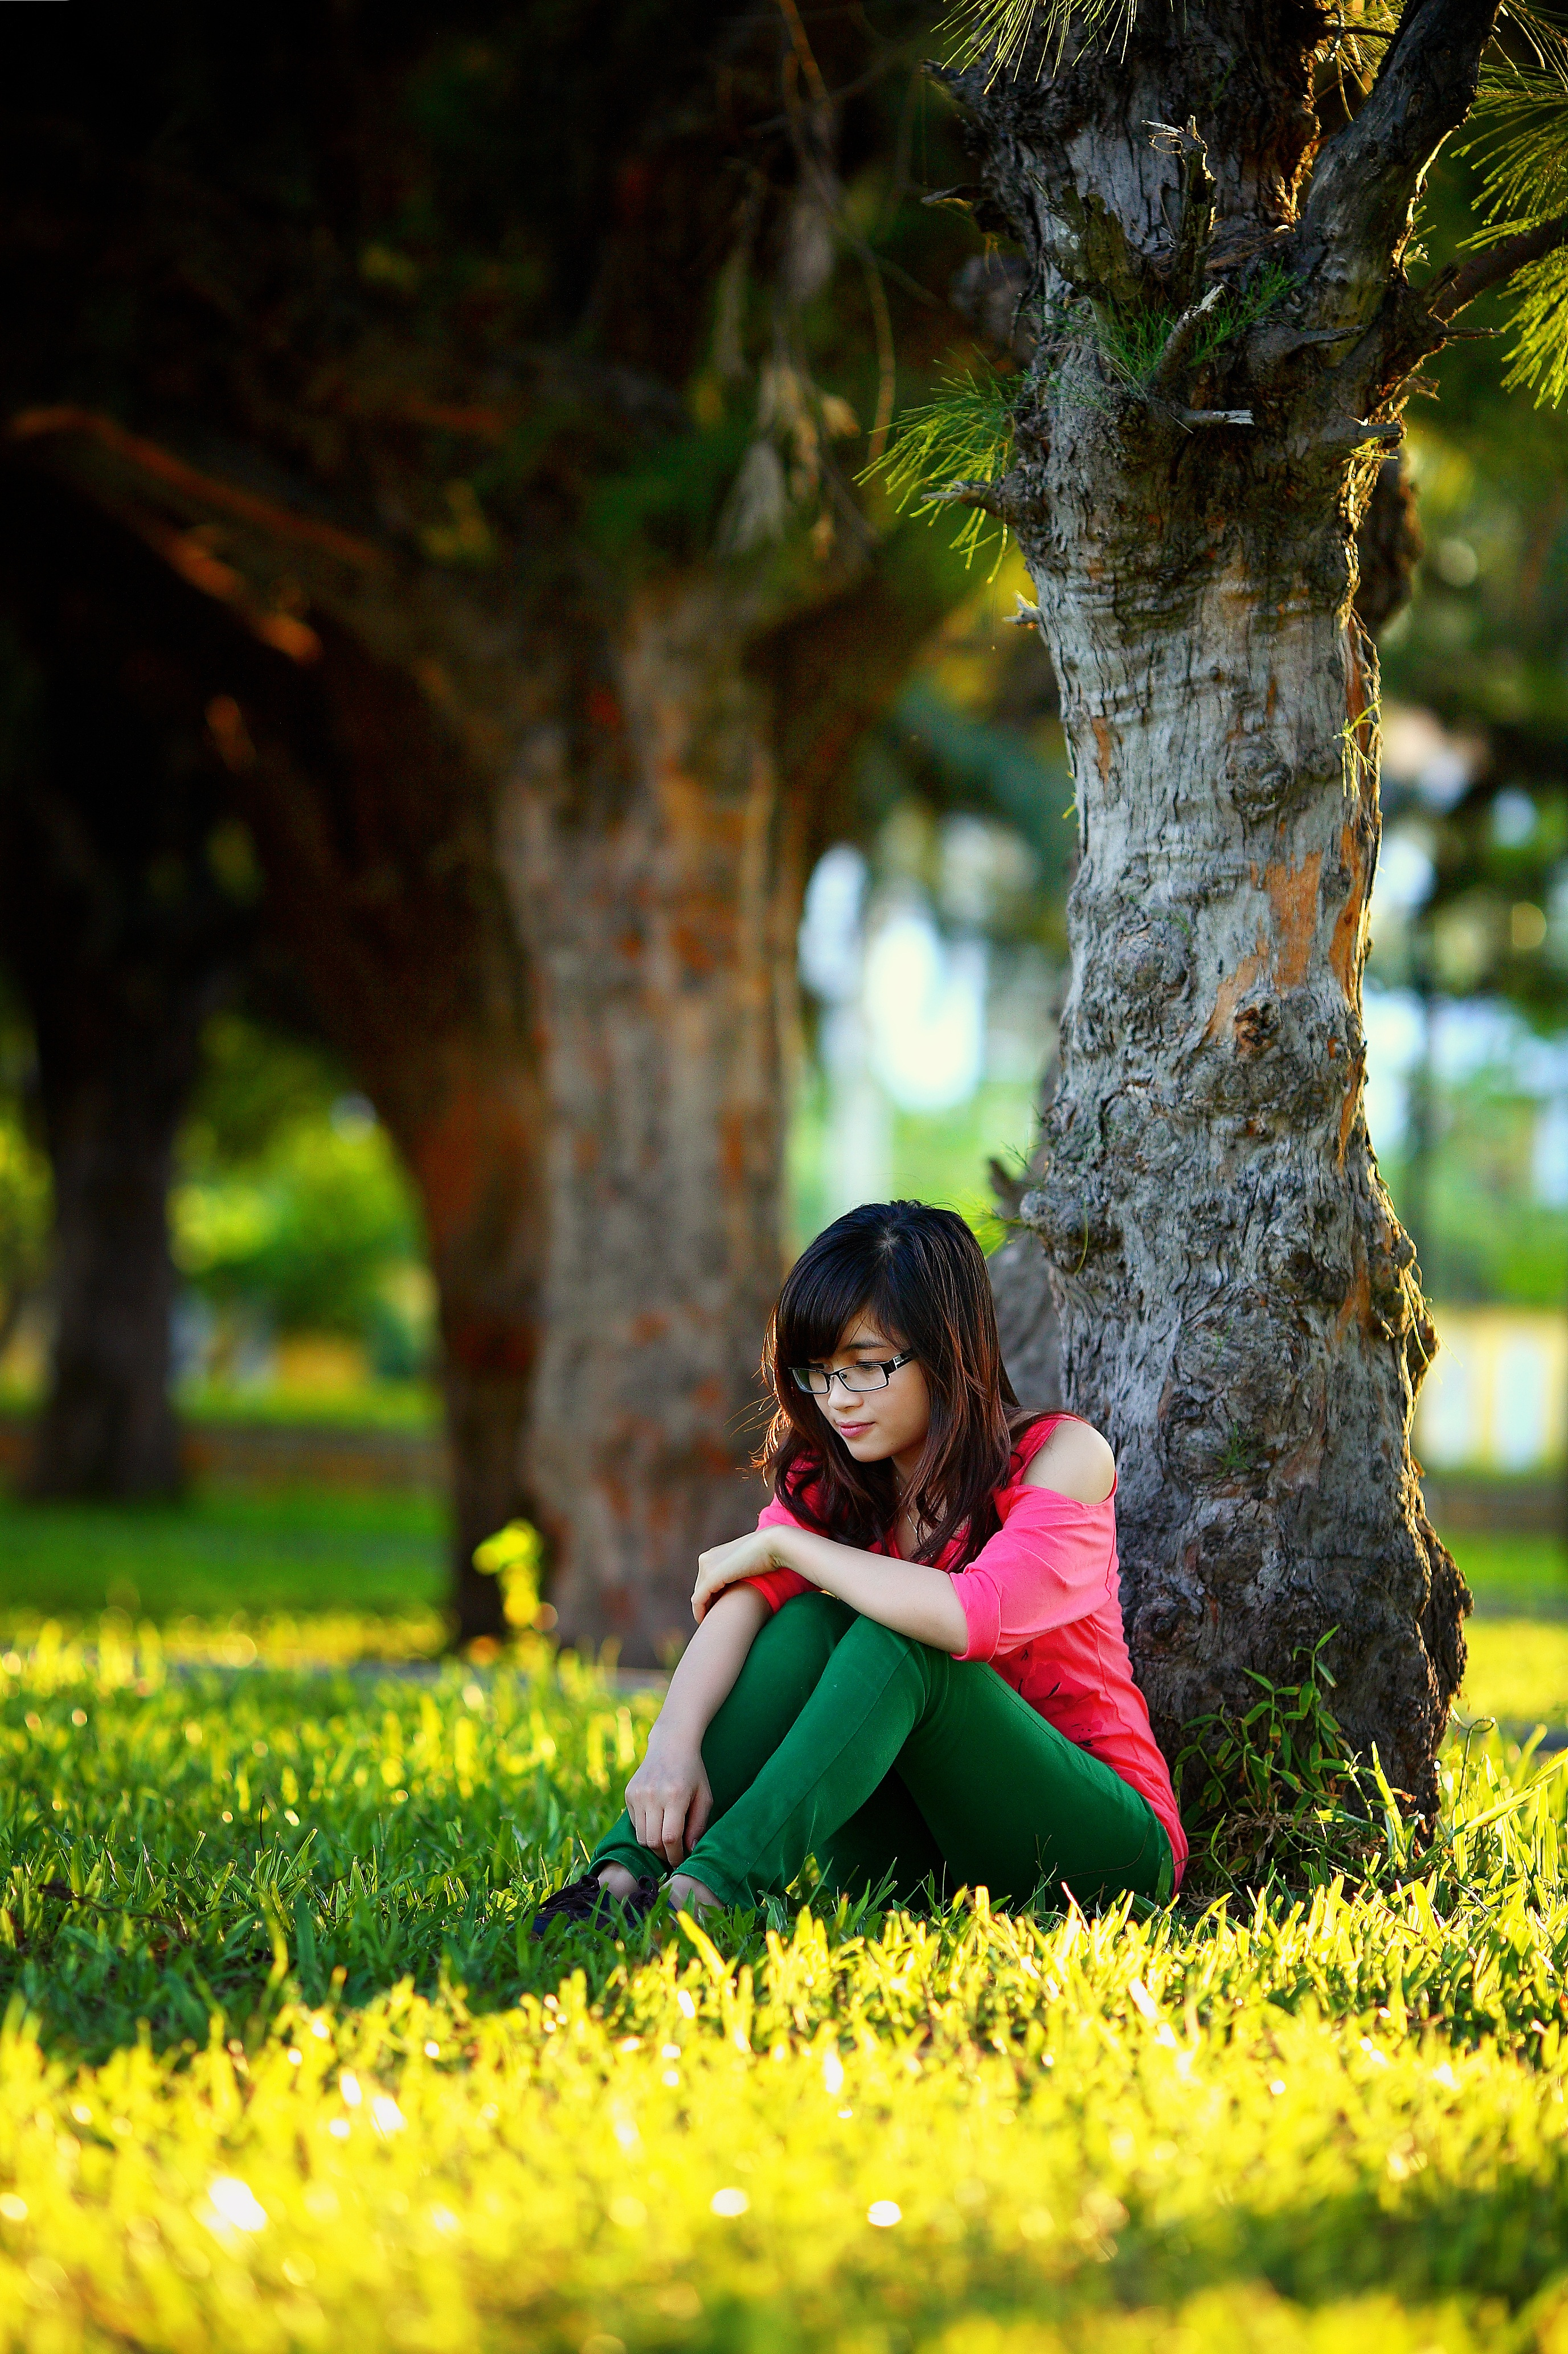 Girls And Trucks Wallpaper 2 Woman Sitting In The Different Bench Chair Near Tree In